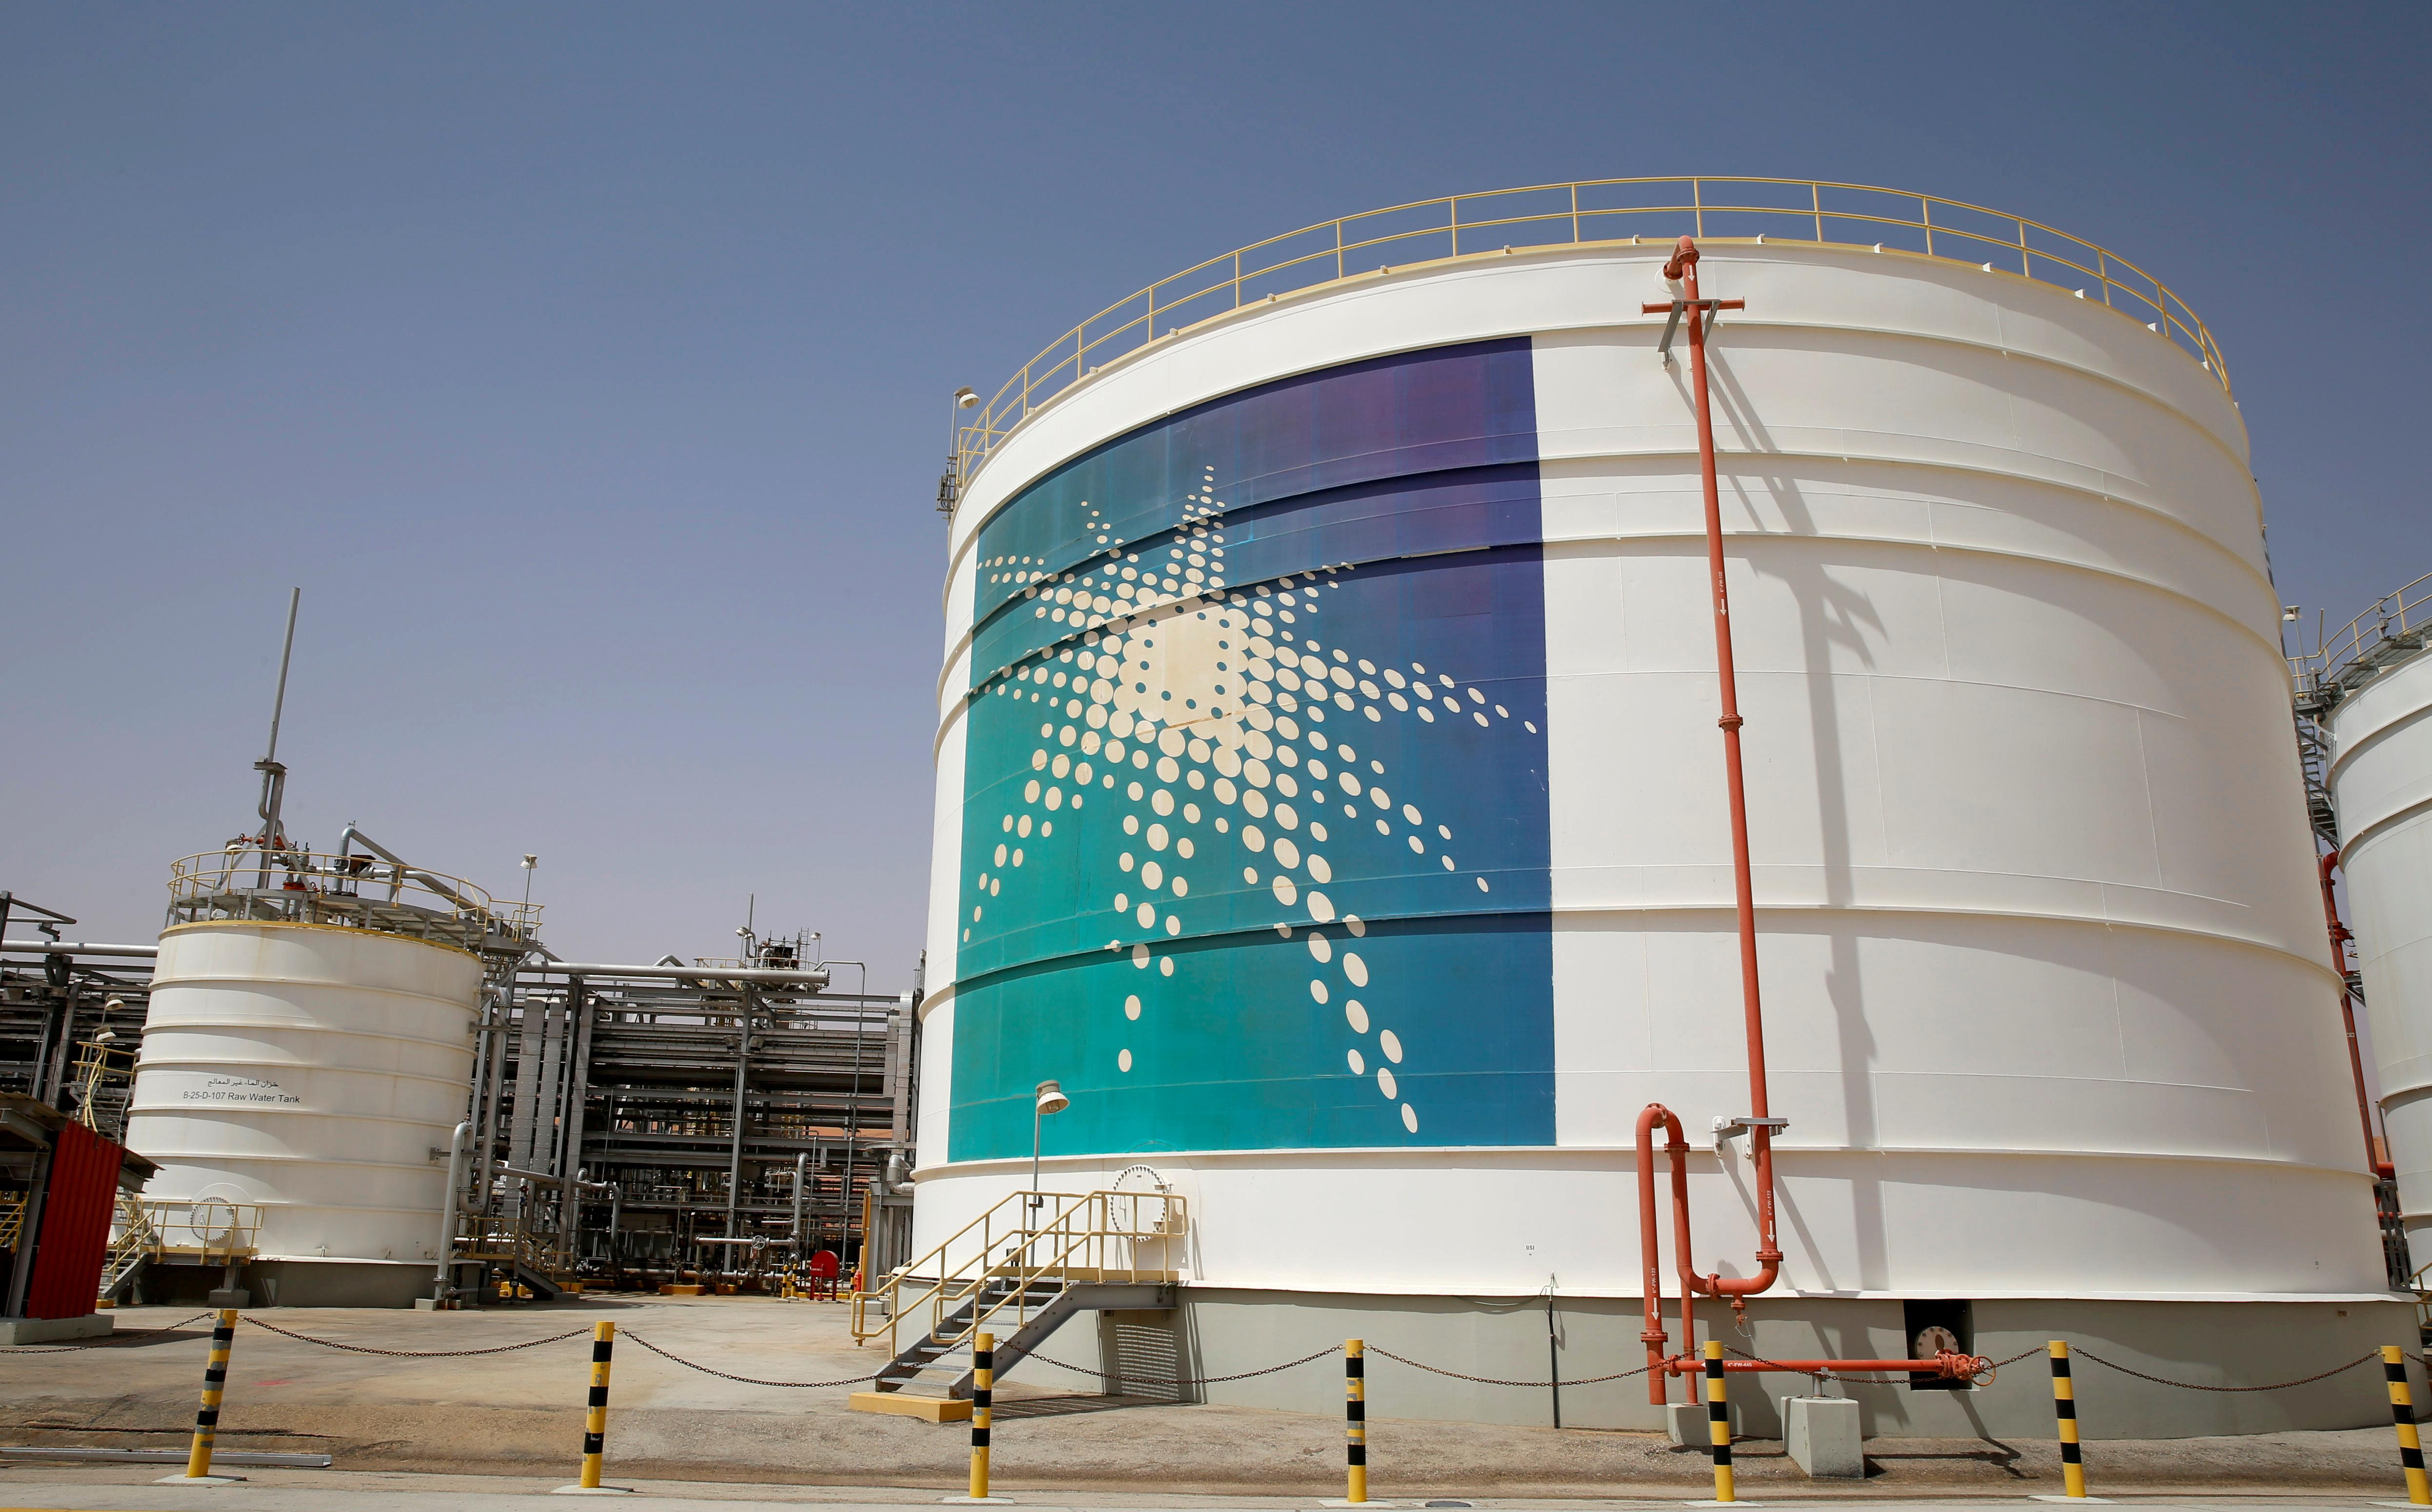 An Aramco oil tank is seen at the Production facility at Saudi Aramco's Shaybah oilfield in the Empty Quarter, Saudi Arabia May 22, 2018. Ahmed Jadallah